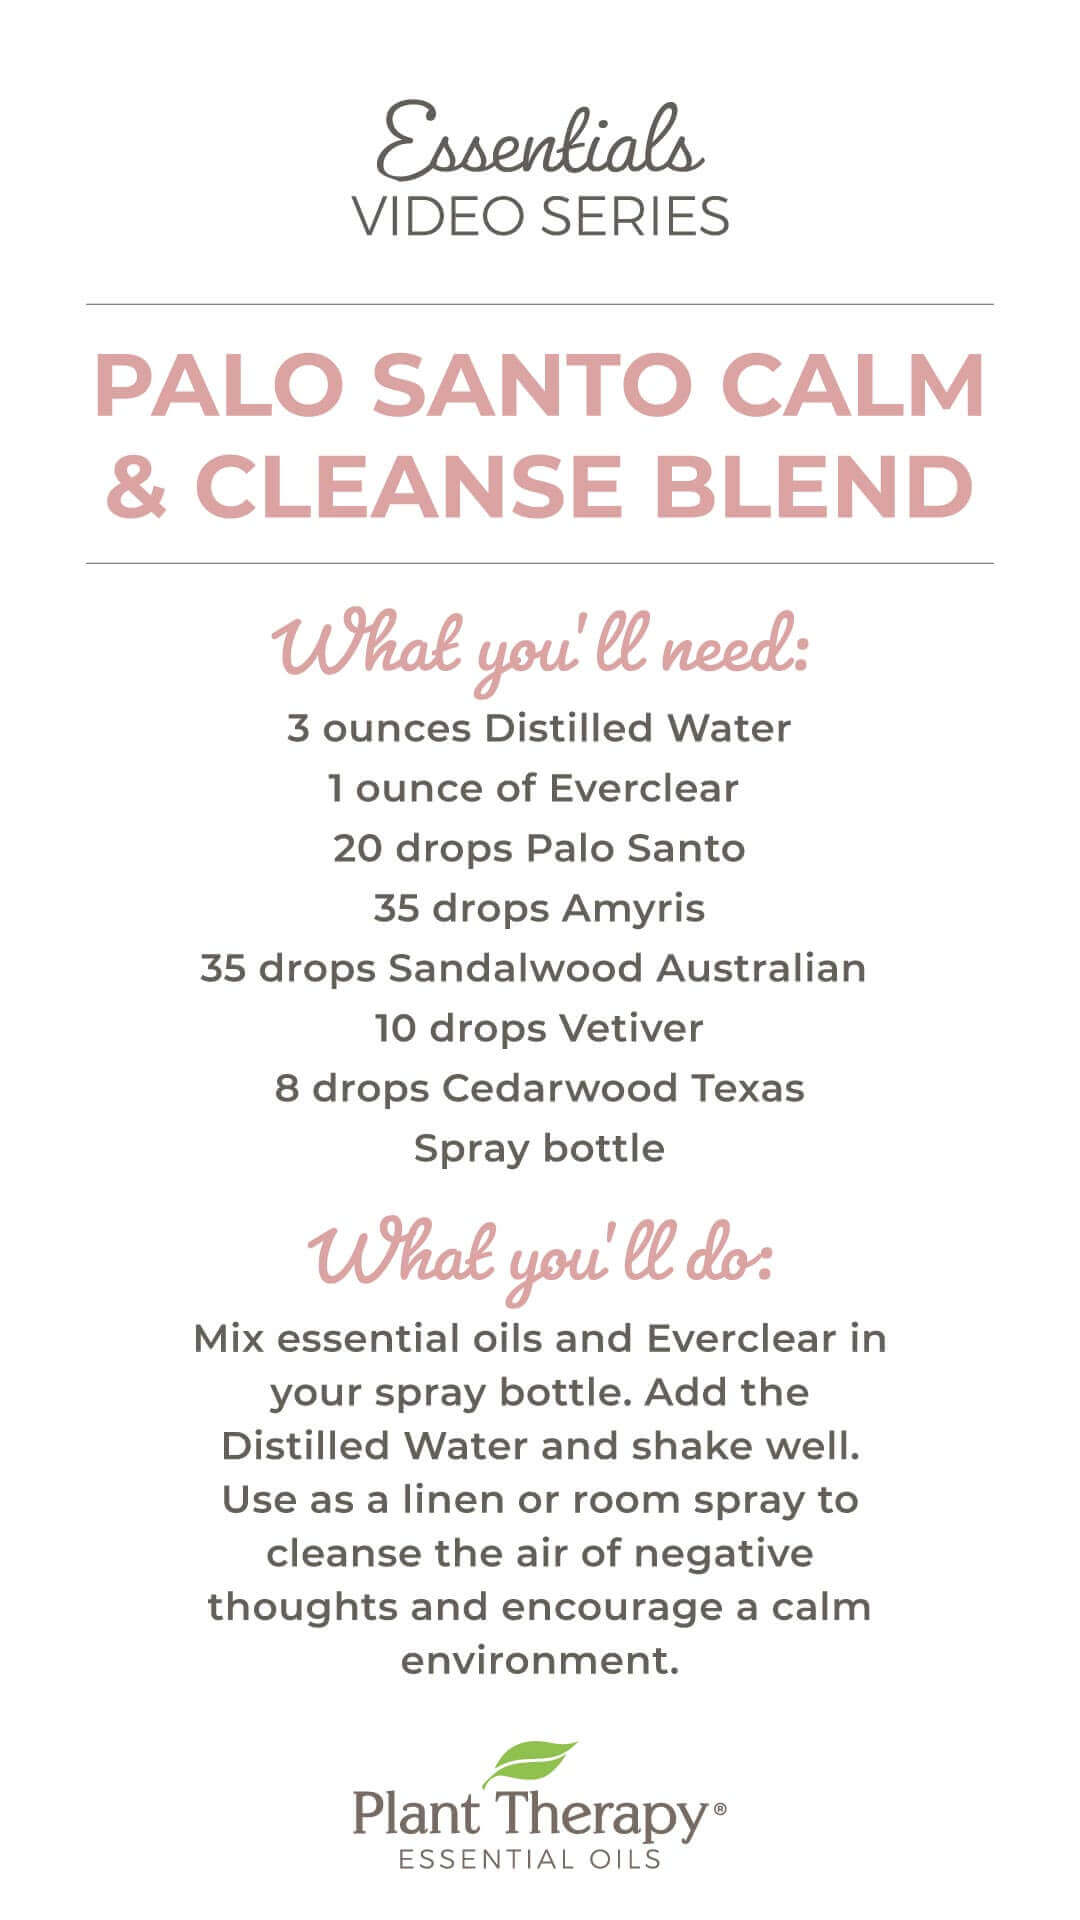 Palo Santo Calm & Cleanse Blend DIY